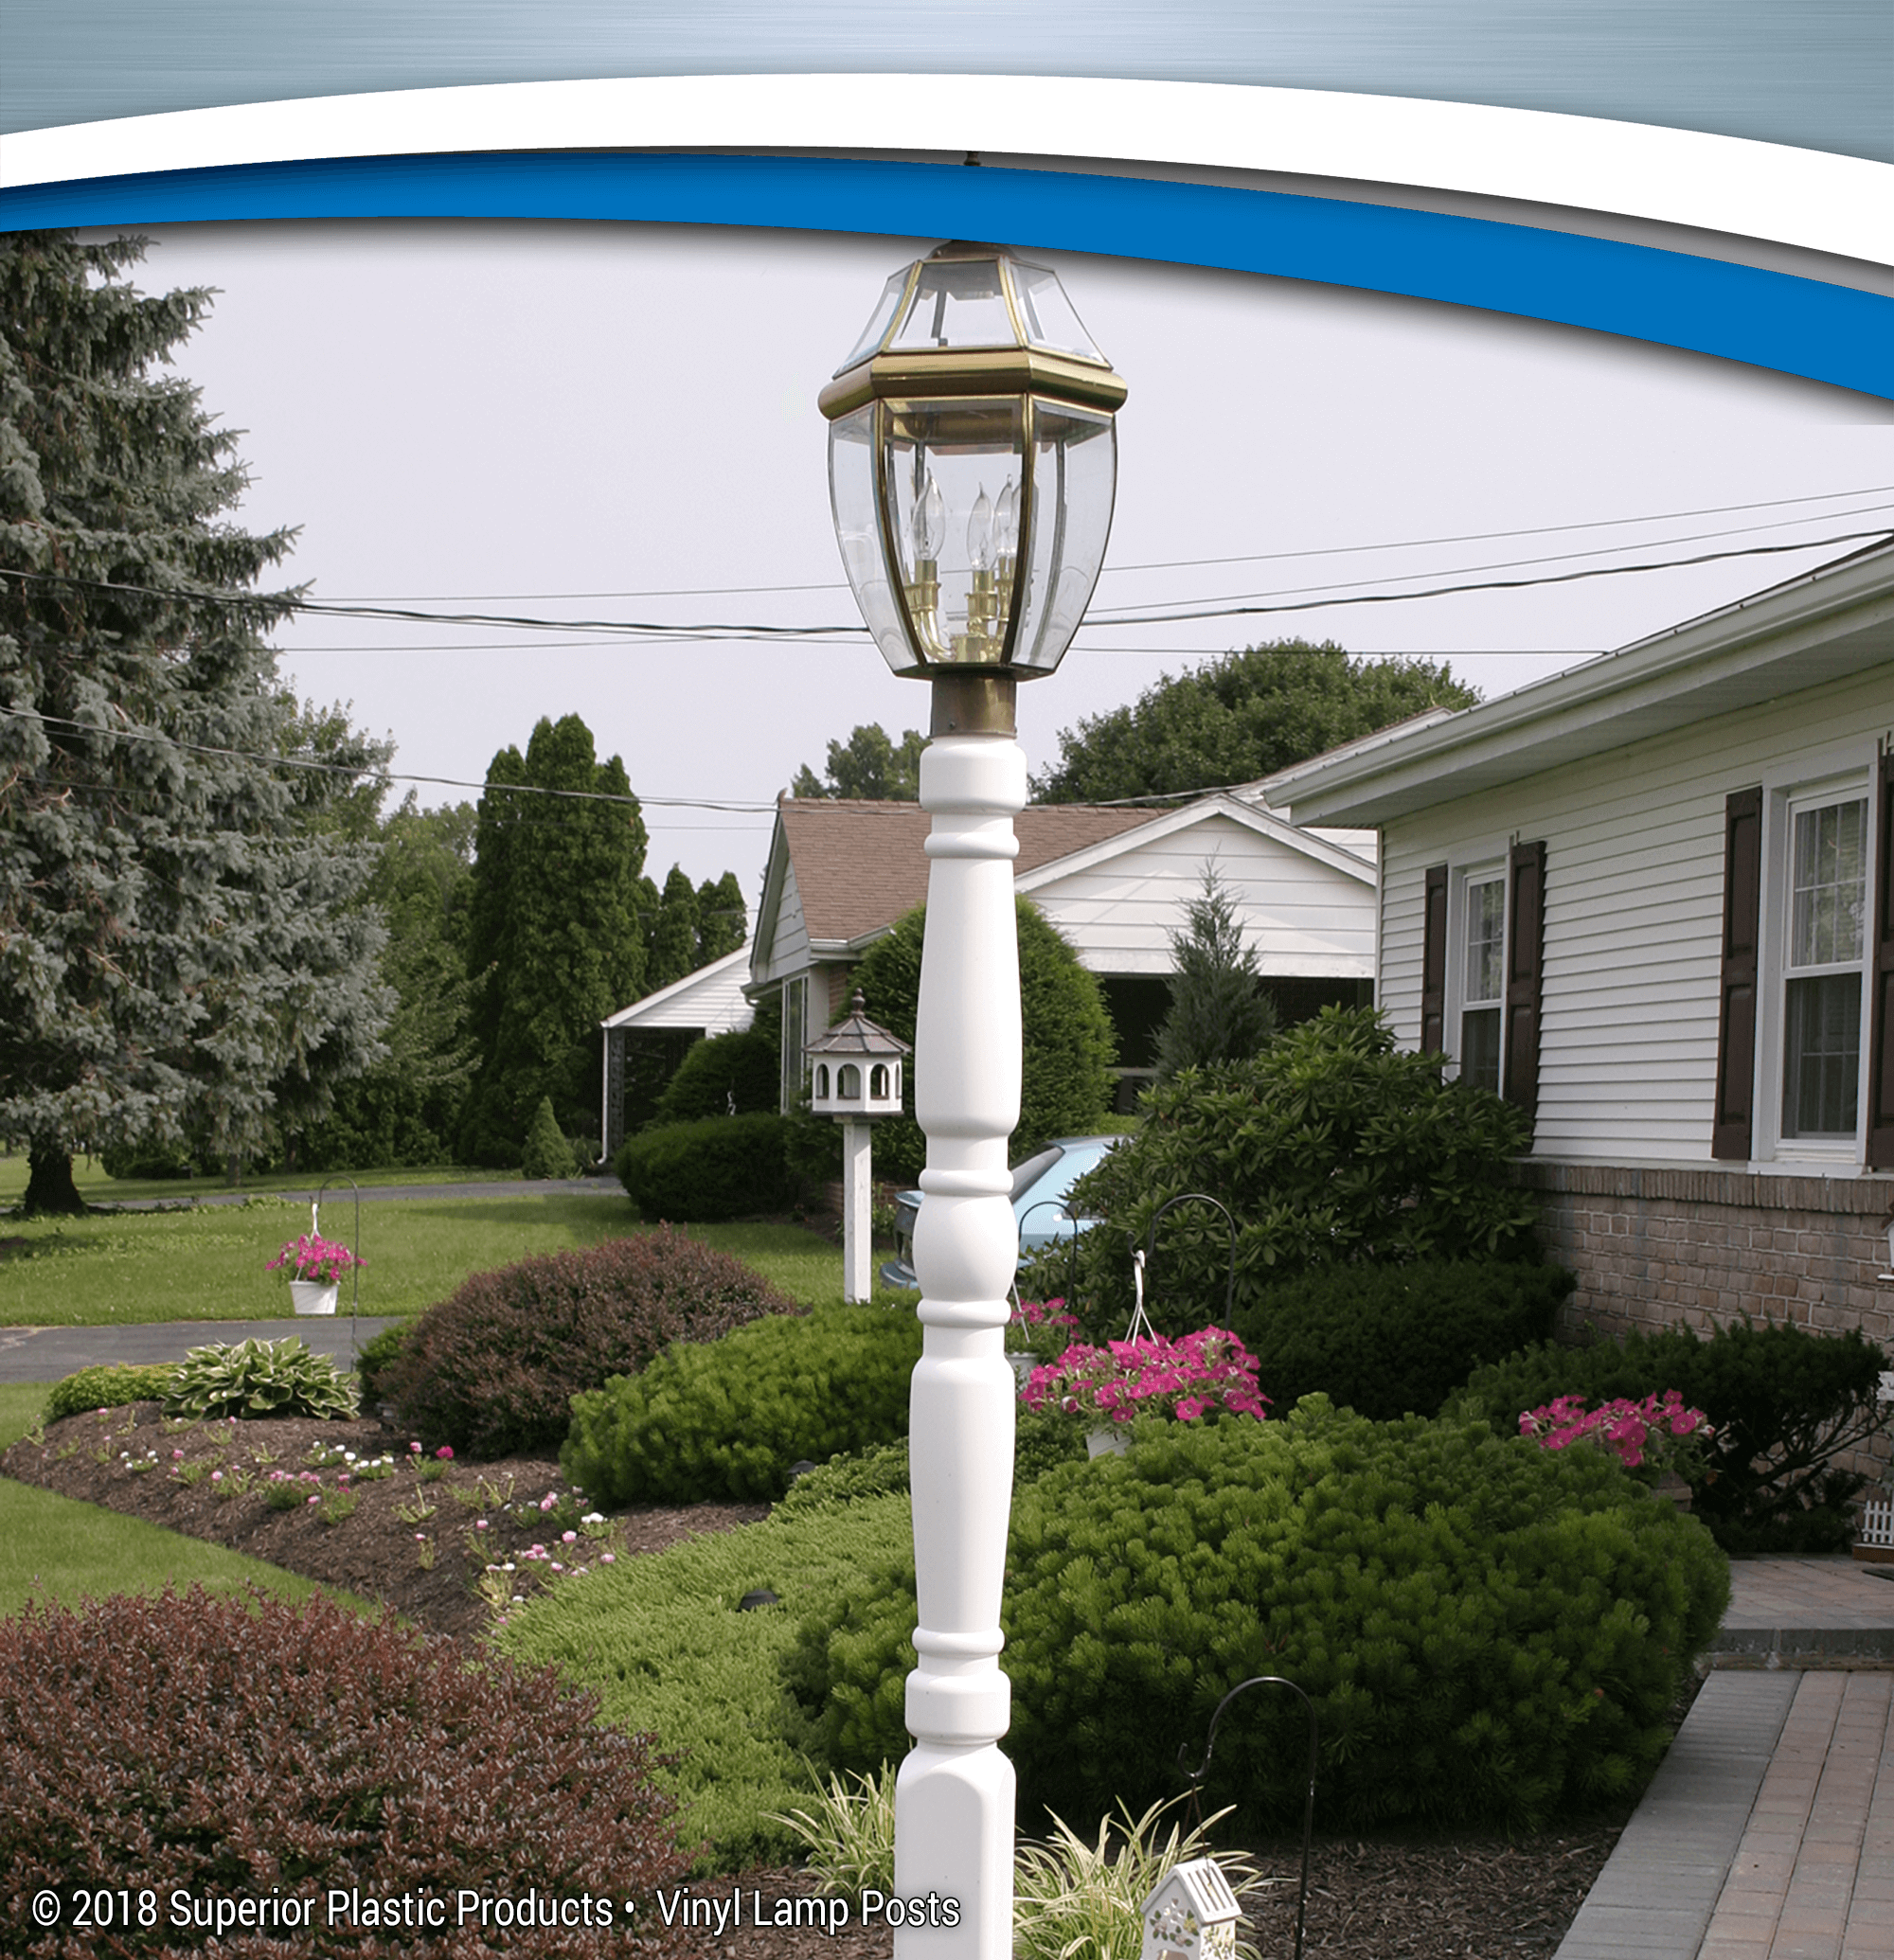 Quality Vinyl Lamp Posts Superior Plastic Products Inc